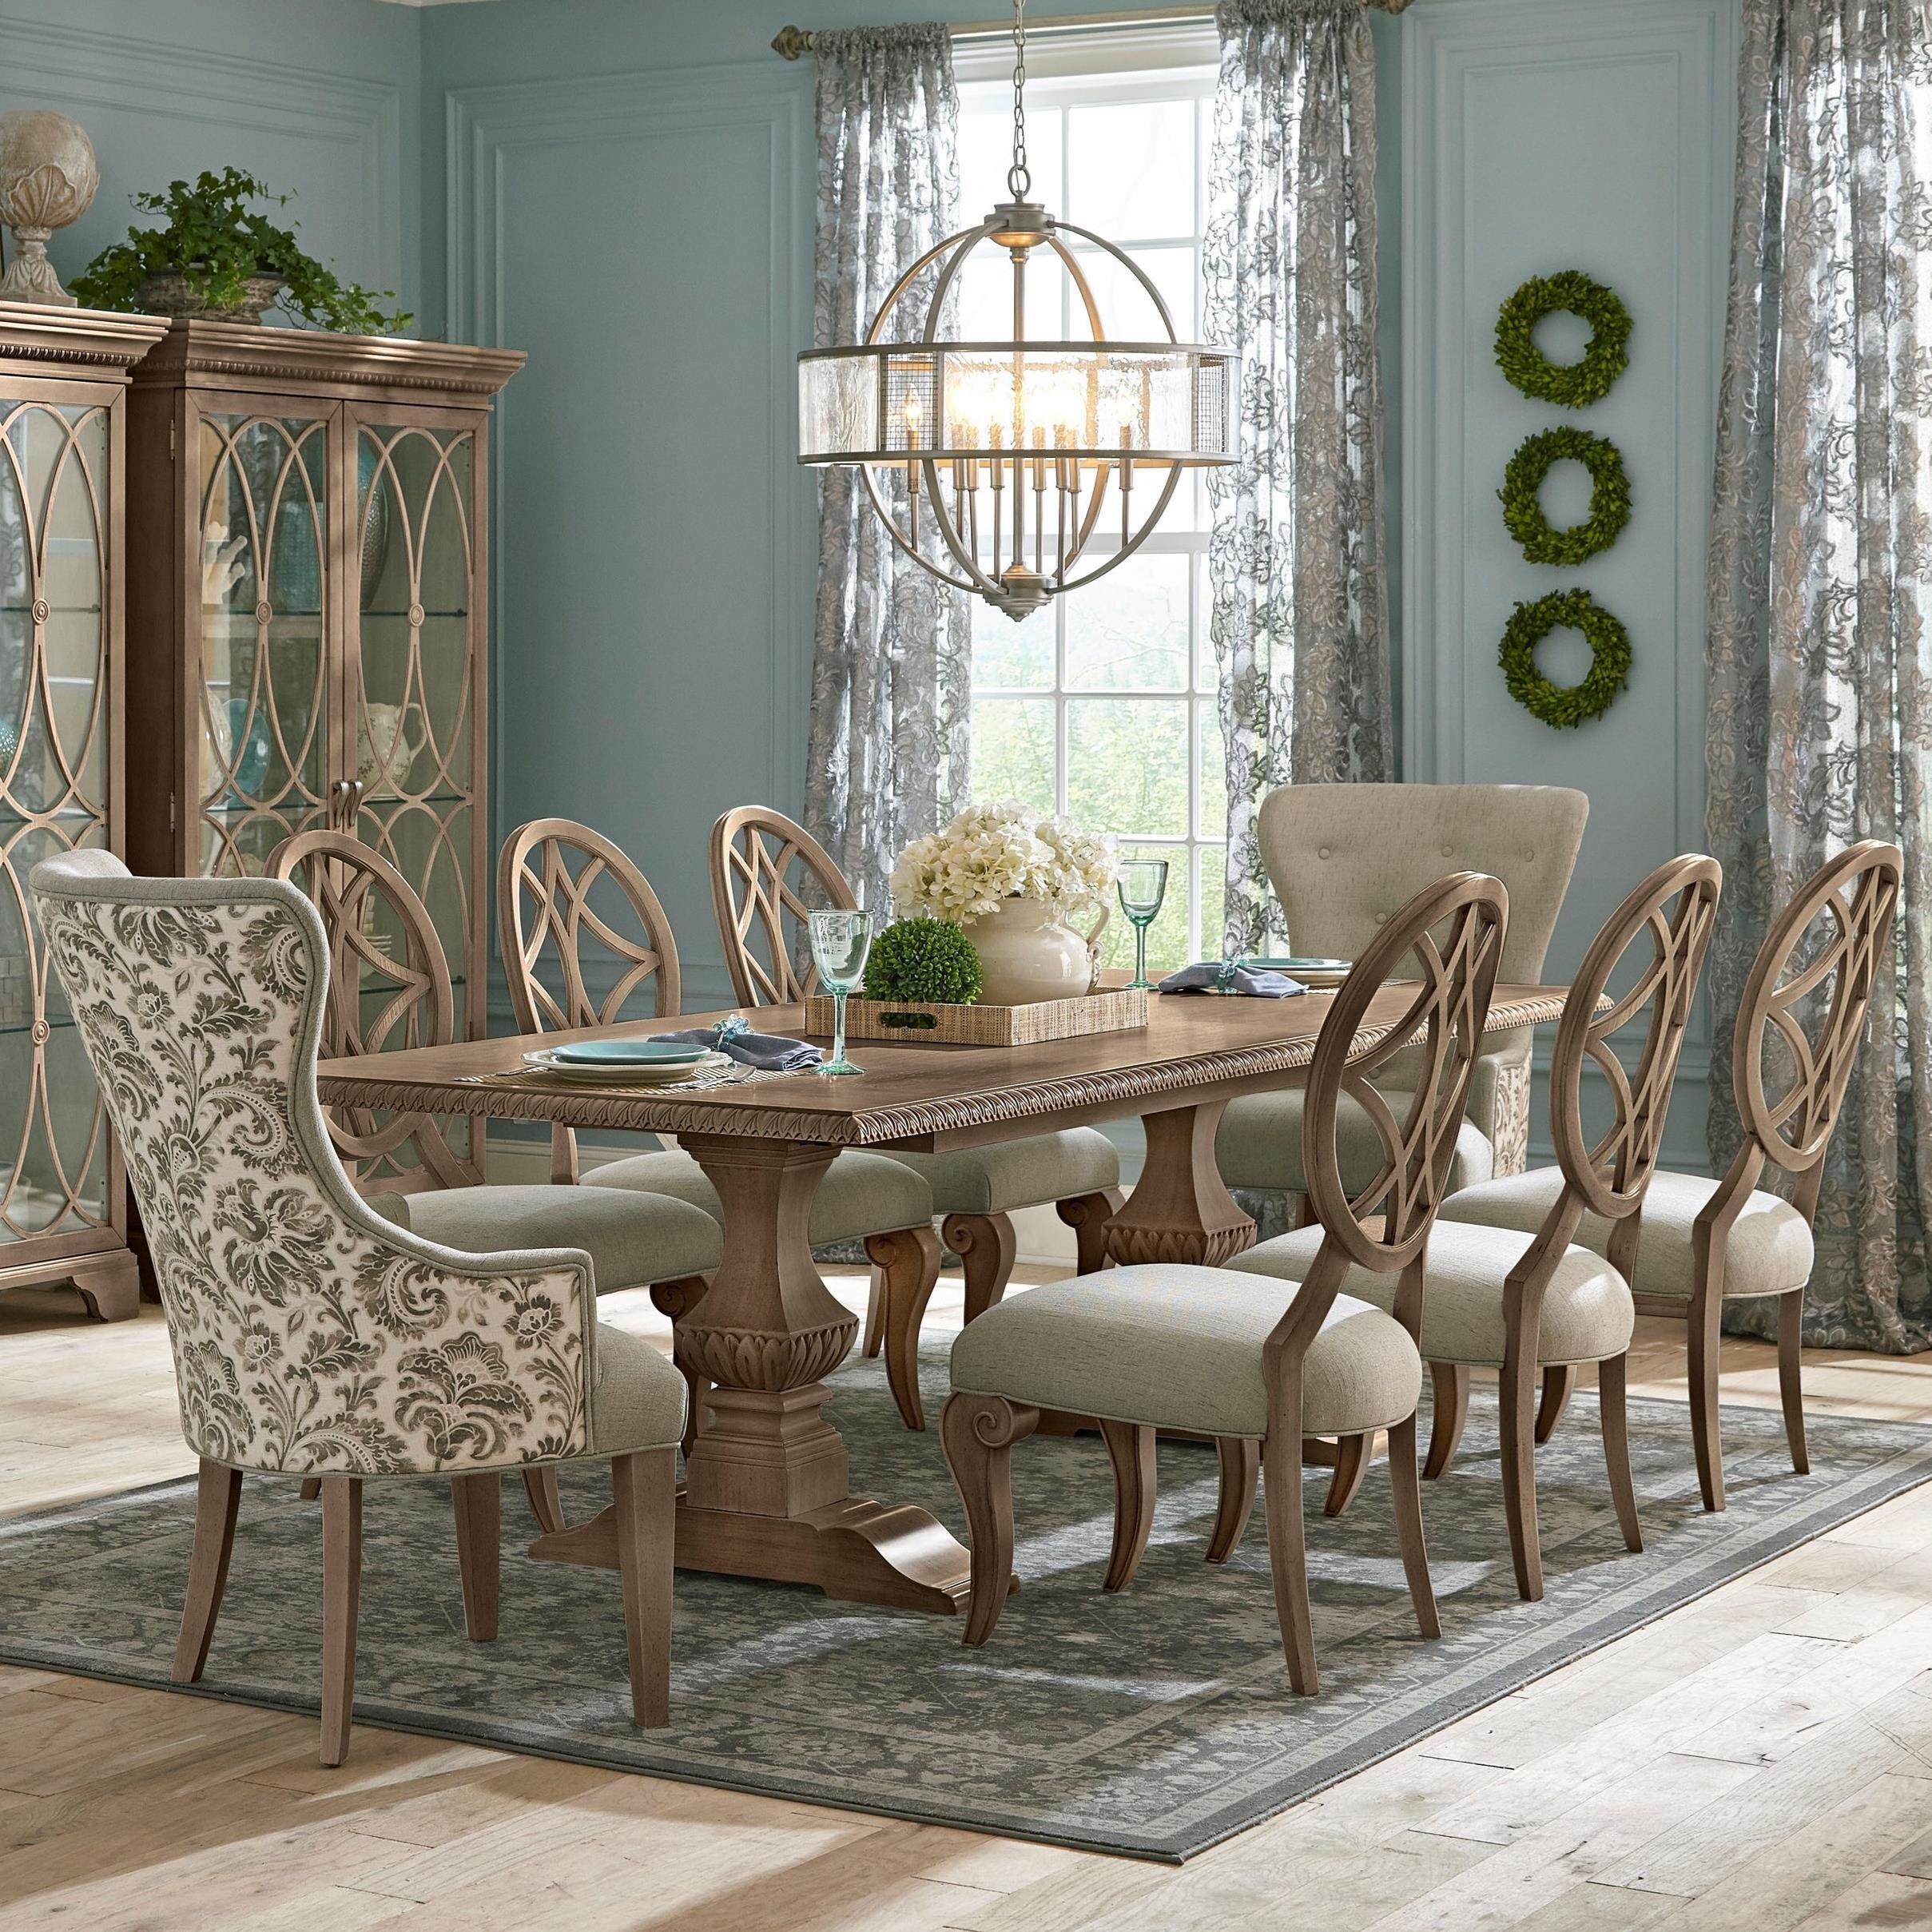 9c131dc5ab63 Nine Piece Dining Set with Tillman Table and Customizabe Host Chairs. Low  price guarantee badge by Trisha Yearwood Home Collection by Klaussner